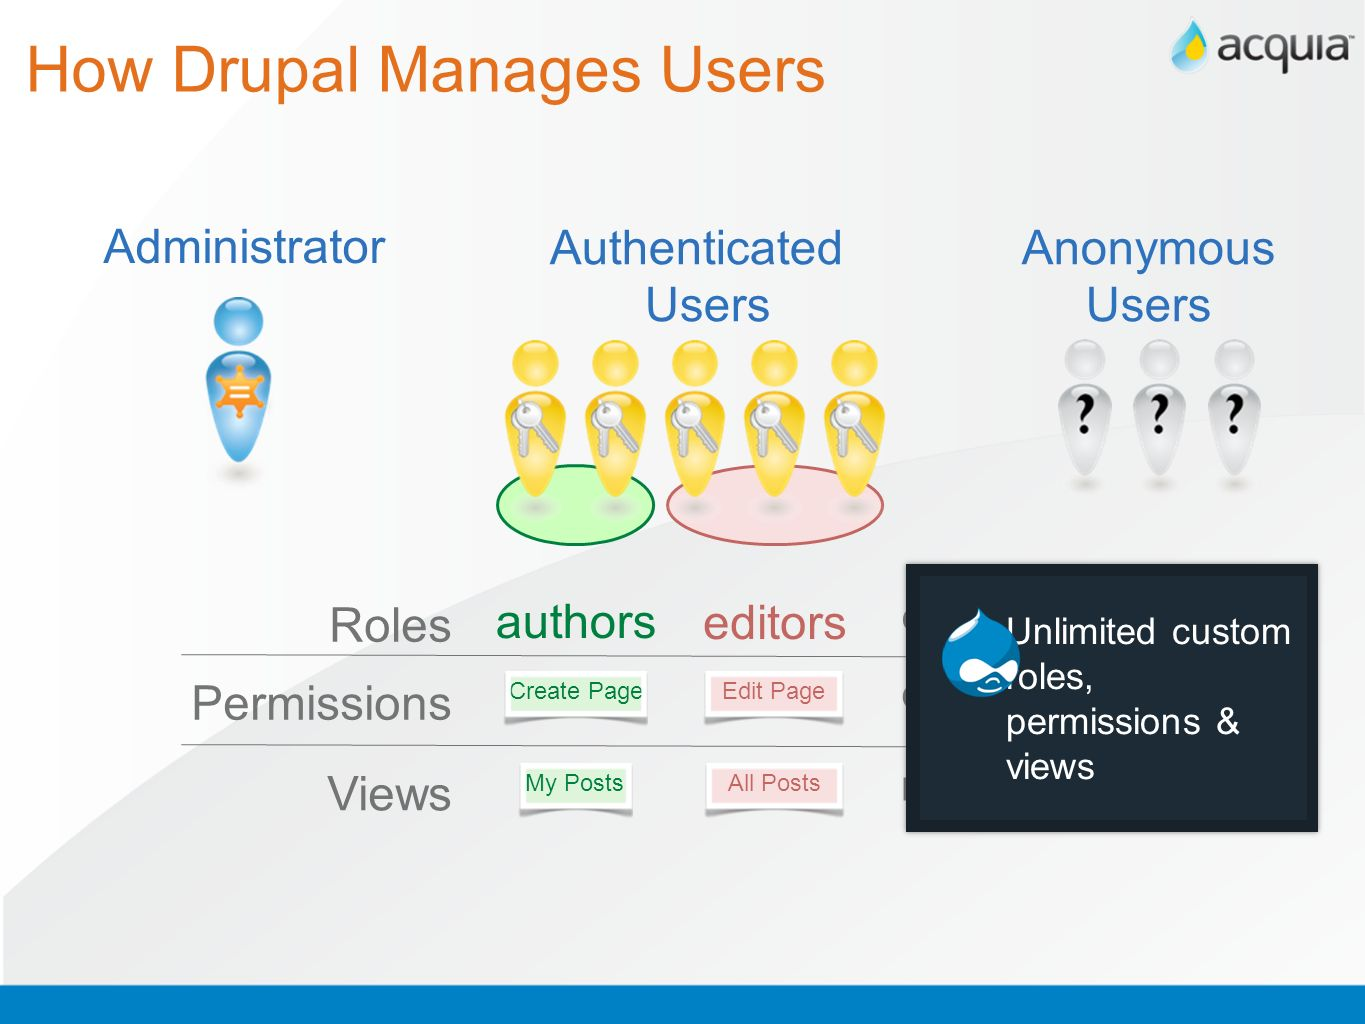 How Drupal Manages Users